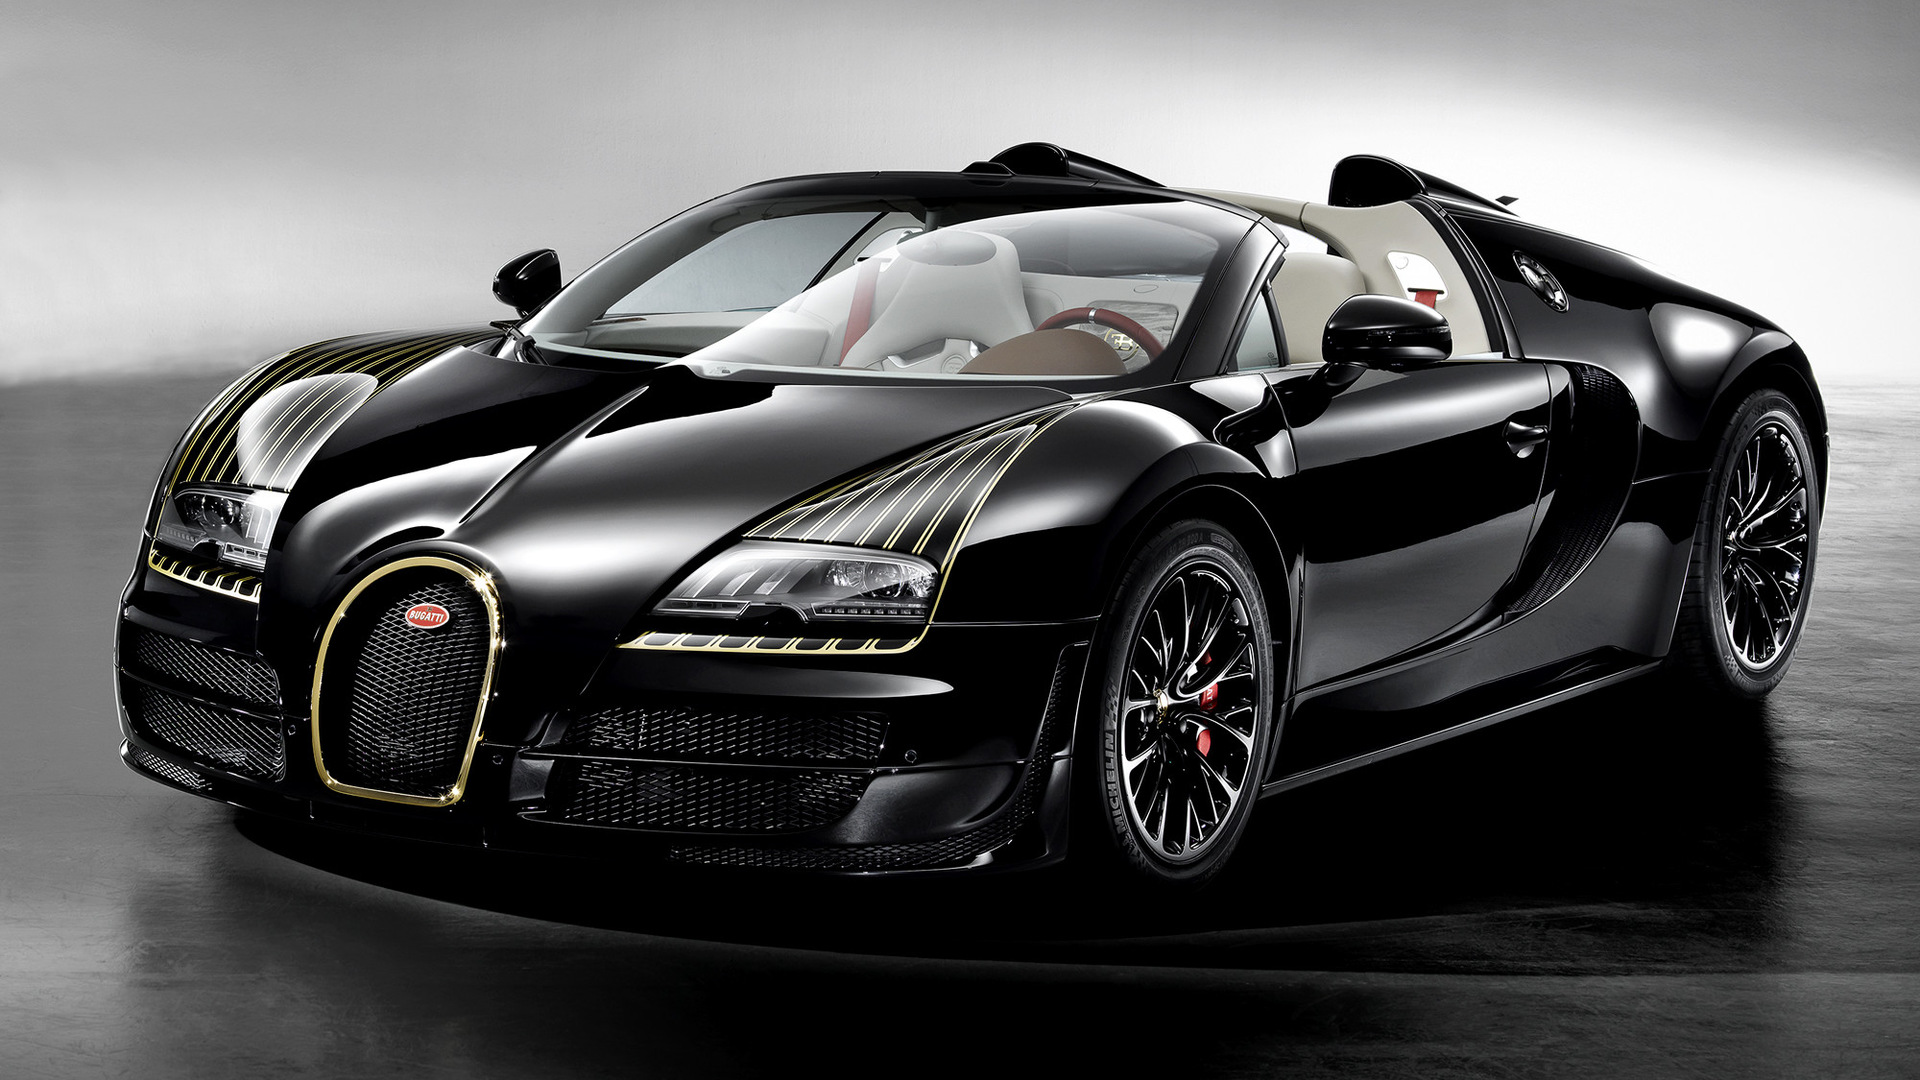 bugatti veyron grand sport vitesse black bess bugatti veyron grand sport vitesse black bess. Black Bedroom Furniture Sets. Home Design Ideas